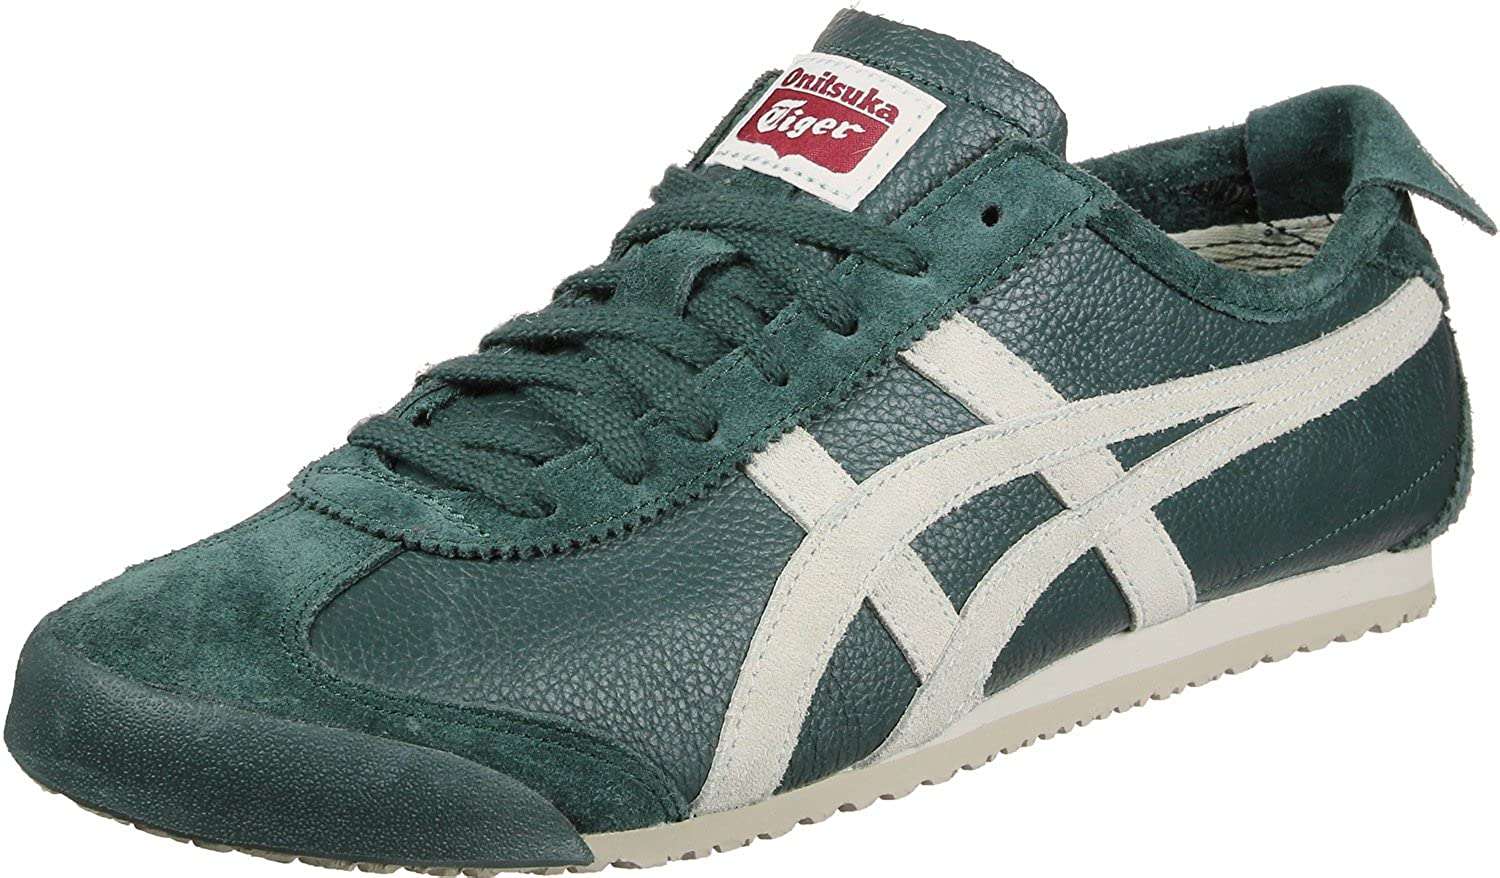 premium selection 1af64 9e70d Onitsuka Tiger Mexico 66 Vin Dark Forest Feather Grey ...